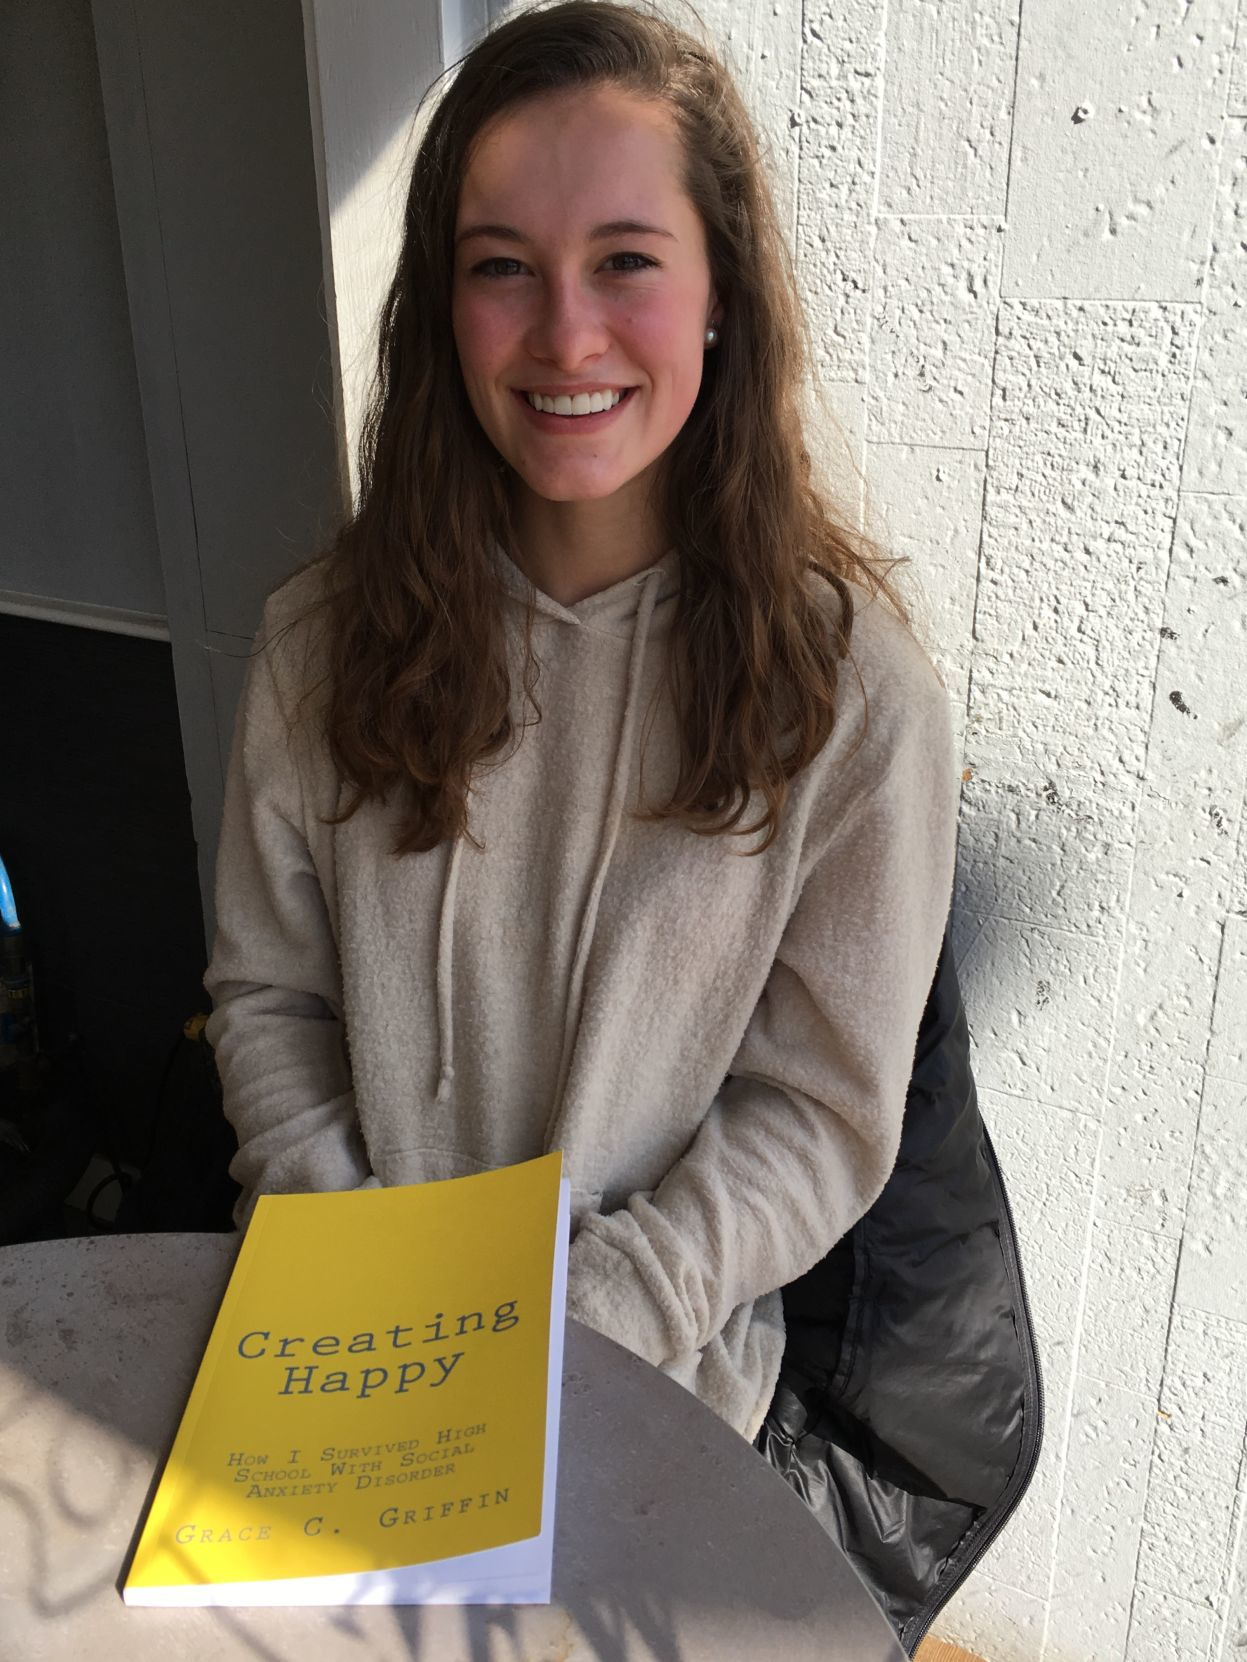 Grace Griffin wants to help others find their own 'happy'